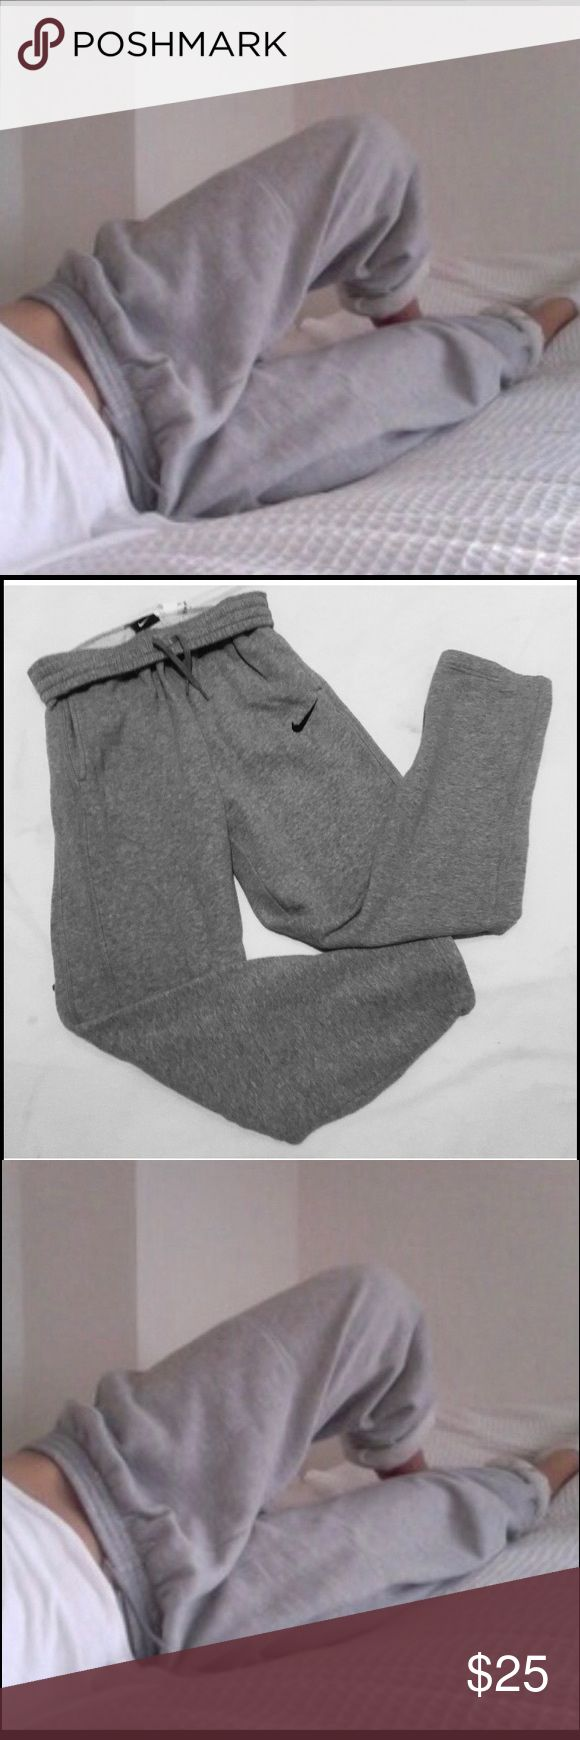 ✔️ Nike Gray Athletic Sweatpants ✔️✔️₦łƙE GƦλ¥ λŦҤŁEŦł₡ $₩EλŦ Pλ₦Ŧ$  • Nike • Gray athletic or lounge sweat pants  • Full length, loose fit, strait legs  • Nike logo, black swoosh  • size small  • Cotton blend Material  • Excellent condition. NWOT. Never worn.   Ⓑ Ⓤ Ⓝ Ⓓ Ⓛ Ⓔ    Ⓓ Ⓘ Ⓢ Ⓒ Ⓞ Ⓤ Ⓝ Ⓣ Ⓢ   - - { { { {available upon your request } } } } - - Nike Pants Track Pants & Joggers